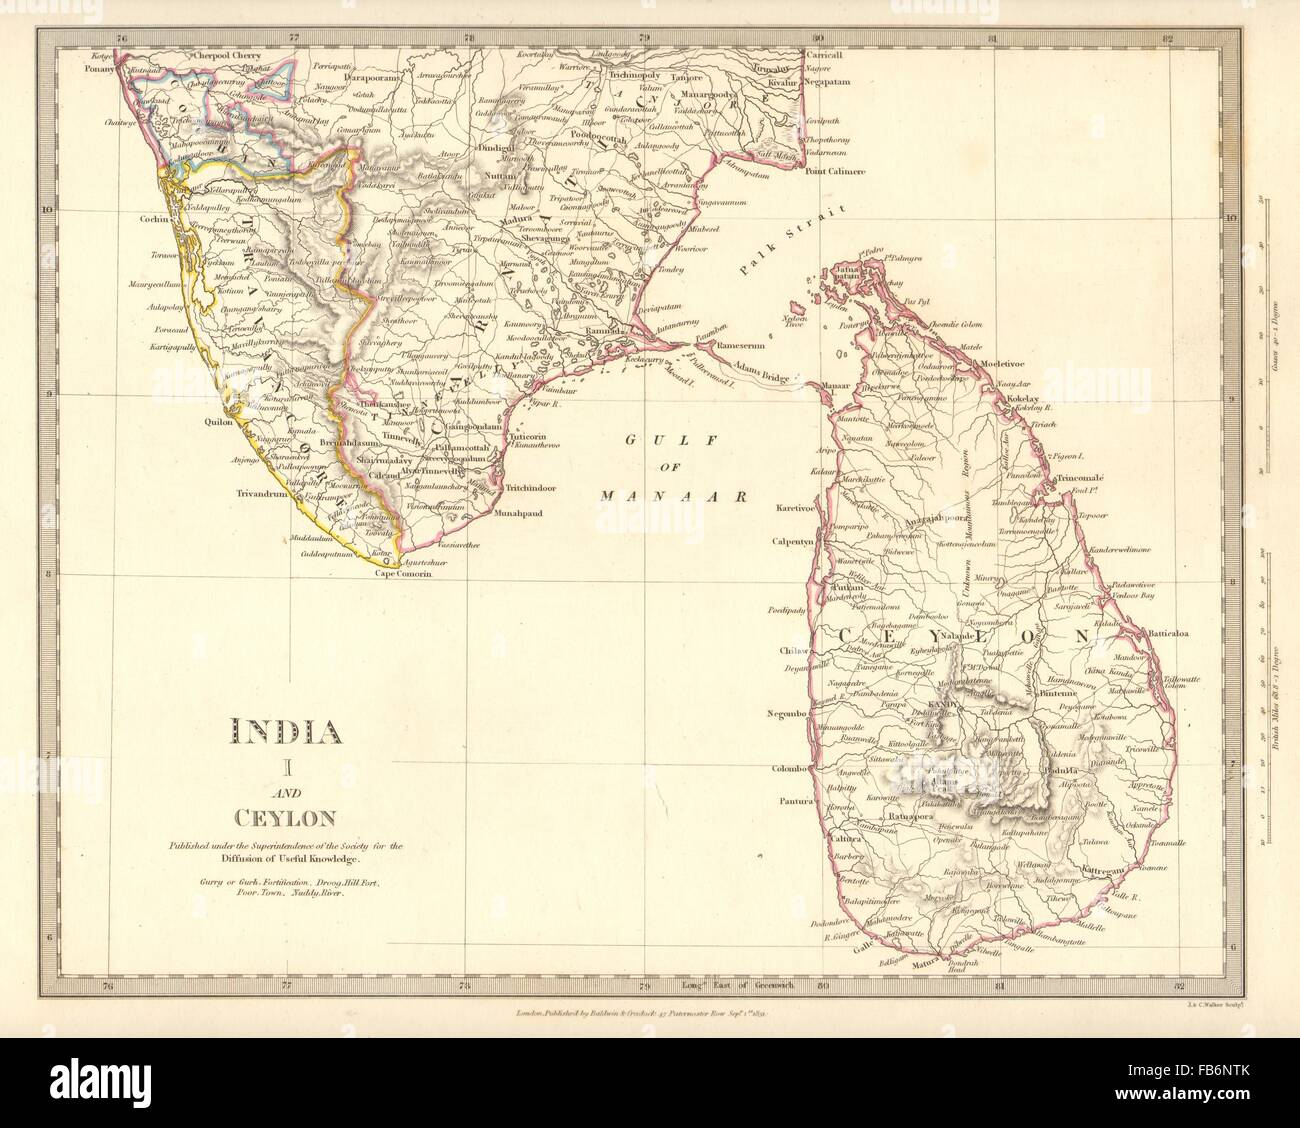 Kochi Map Stock Photos Kochi Map Stock Images Alamy